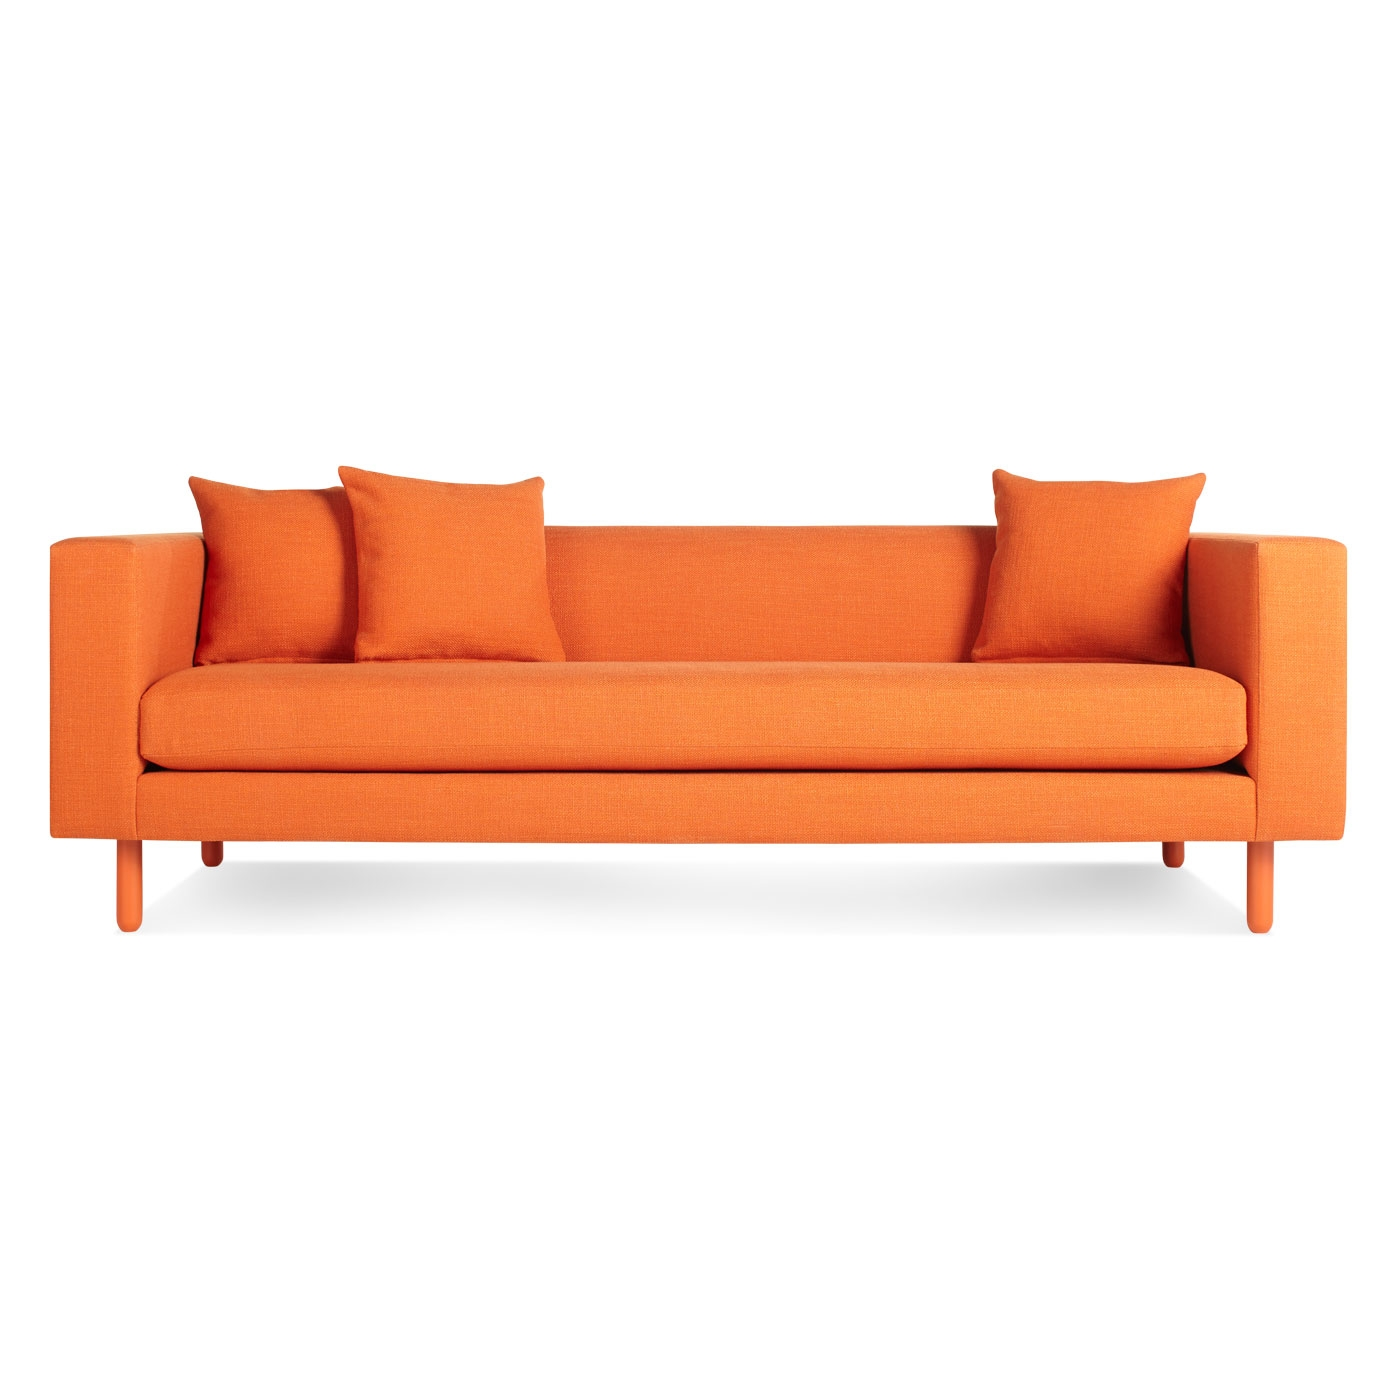 Orange Sofa Interior Design Cool Sofas Perfect Cool Orange Sofa Inside Orange Sofa Chairs (Image 13 of 15)